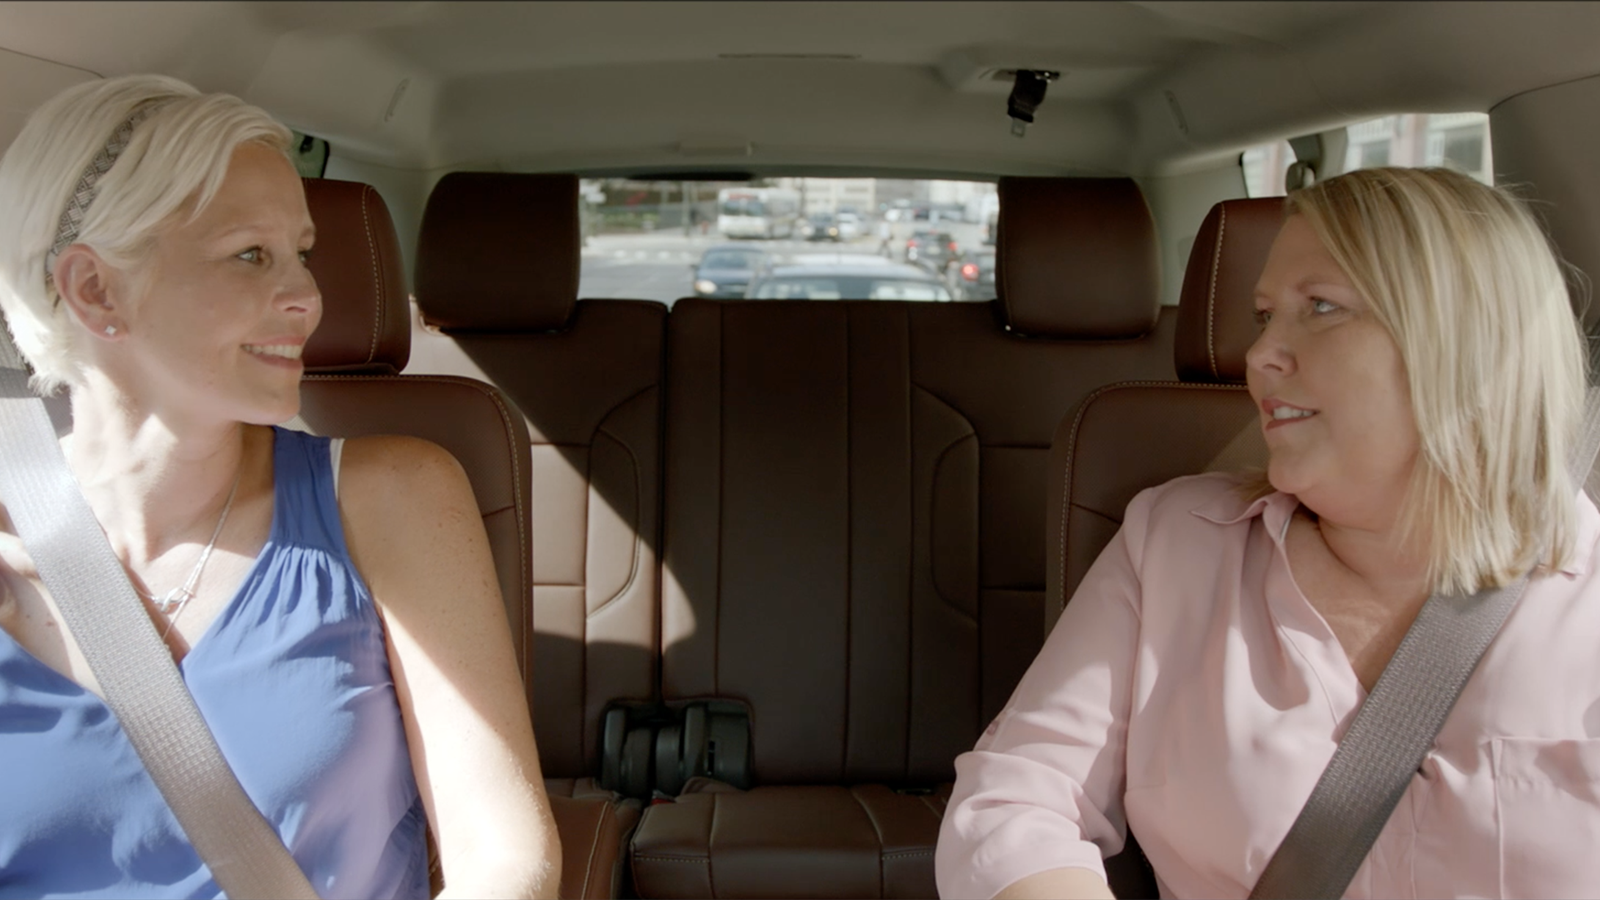 Making Strides Against Breast Cancer de Chevrolet: Video: Comparte la lucha - Stacey y Kristy